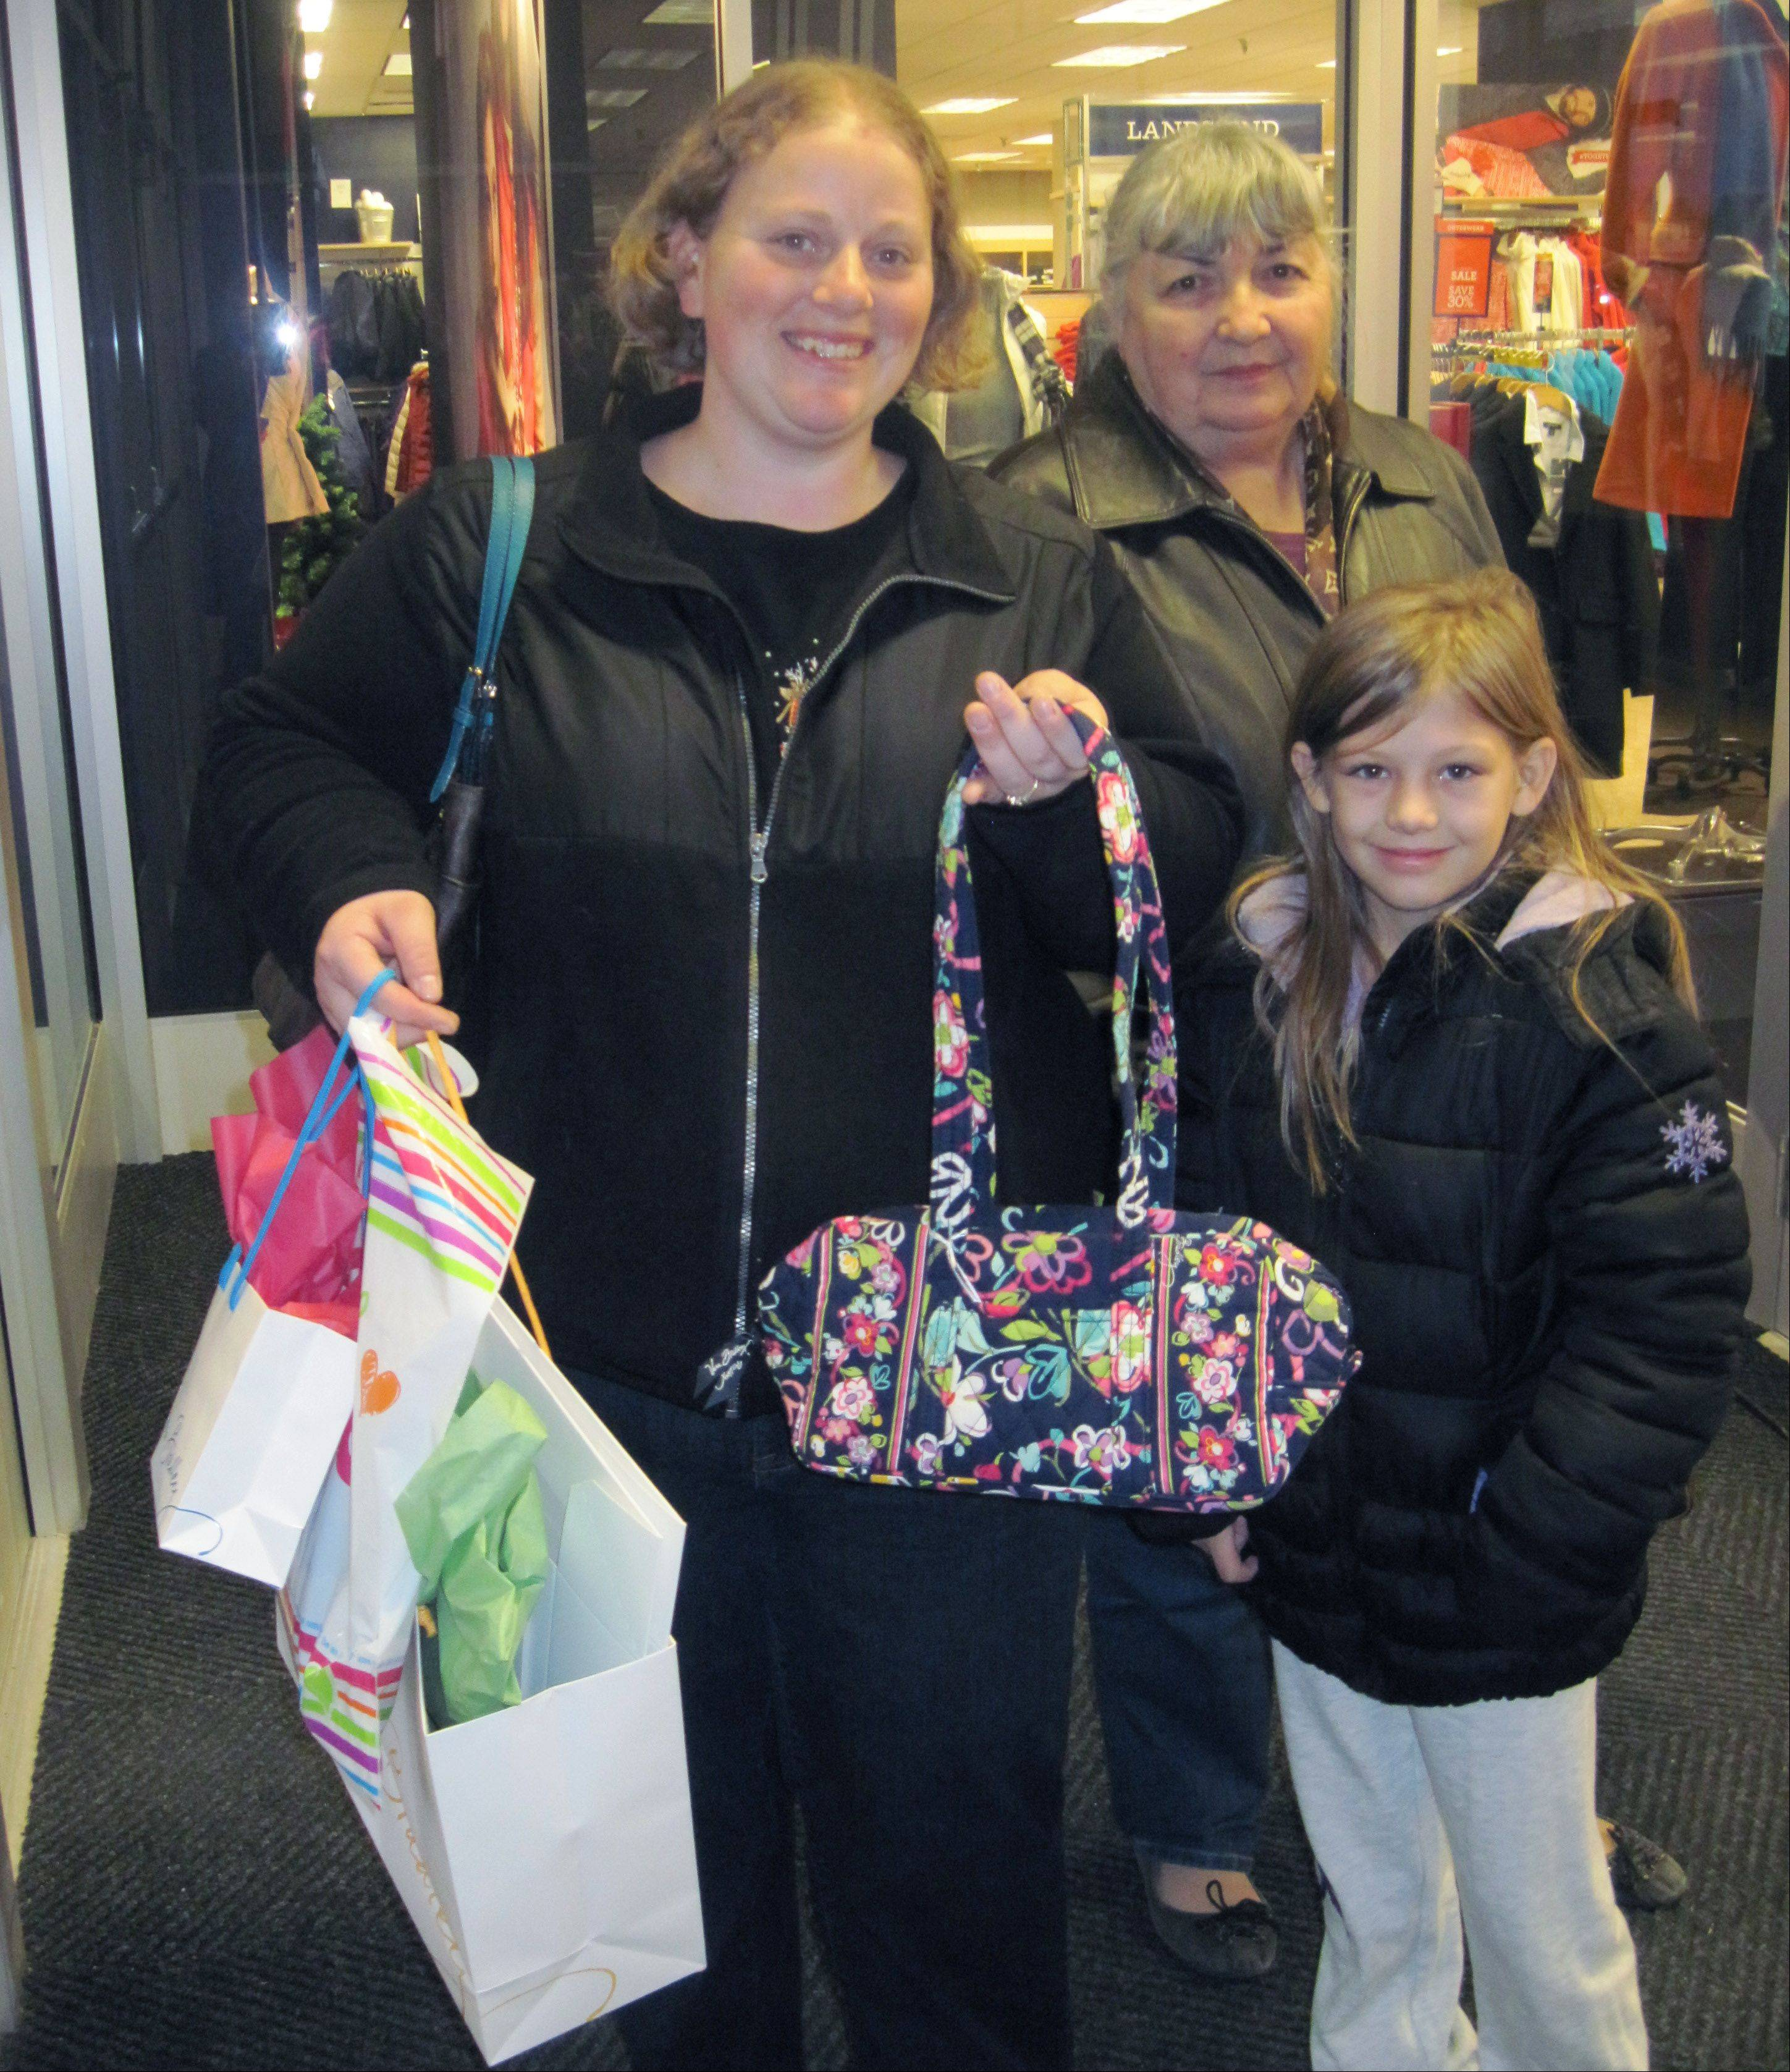 Marni Pyke/mpyke@dailyherald.comSarah Allen can't believe the deal she got on this Vera Bradley bag at Oakbrook Center Friday while out with her mother, Carol Fowler, and Fowler's granddaughter, Lilly, 9.